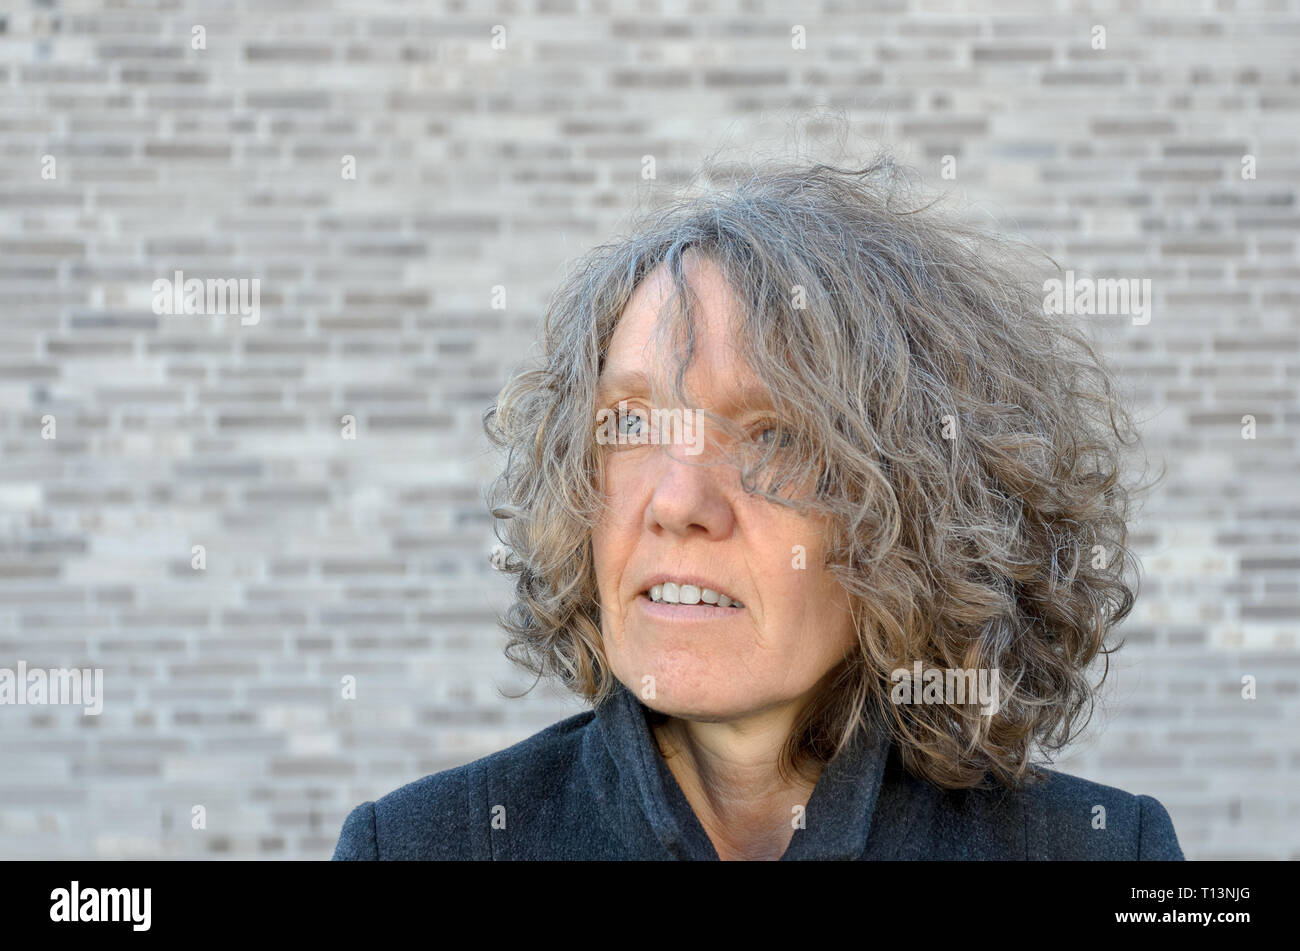 Mature serios woman with curly tousled hair looking off to the side as she poses in front of a grey brick wall with copy space - Stock Image